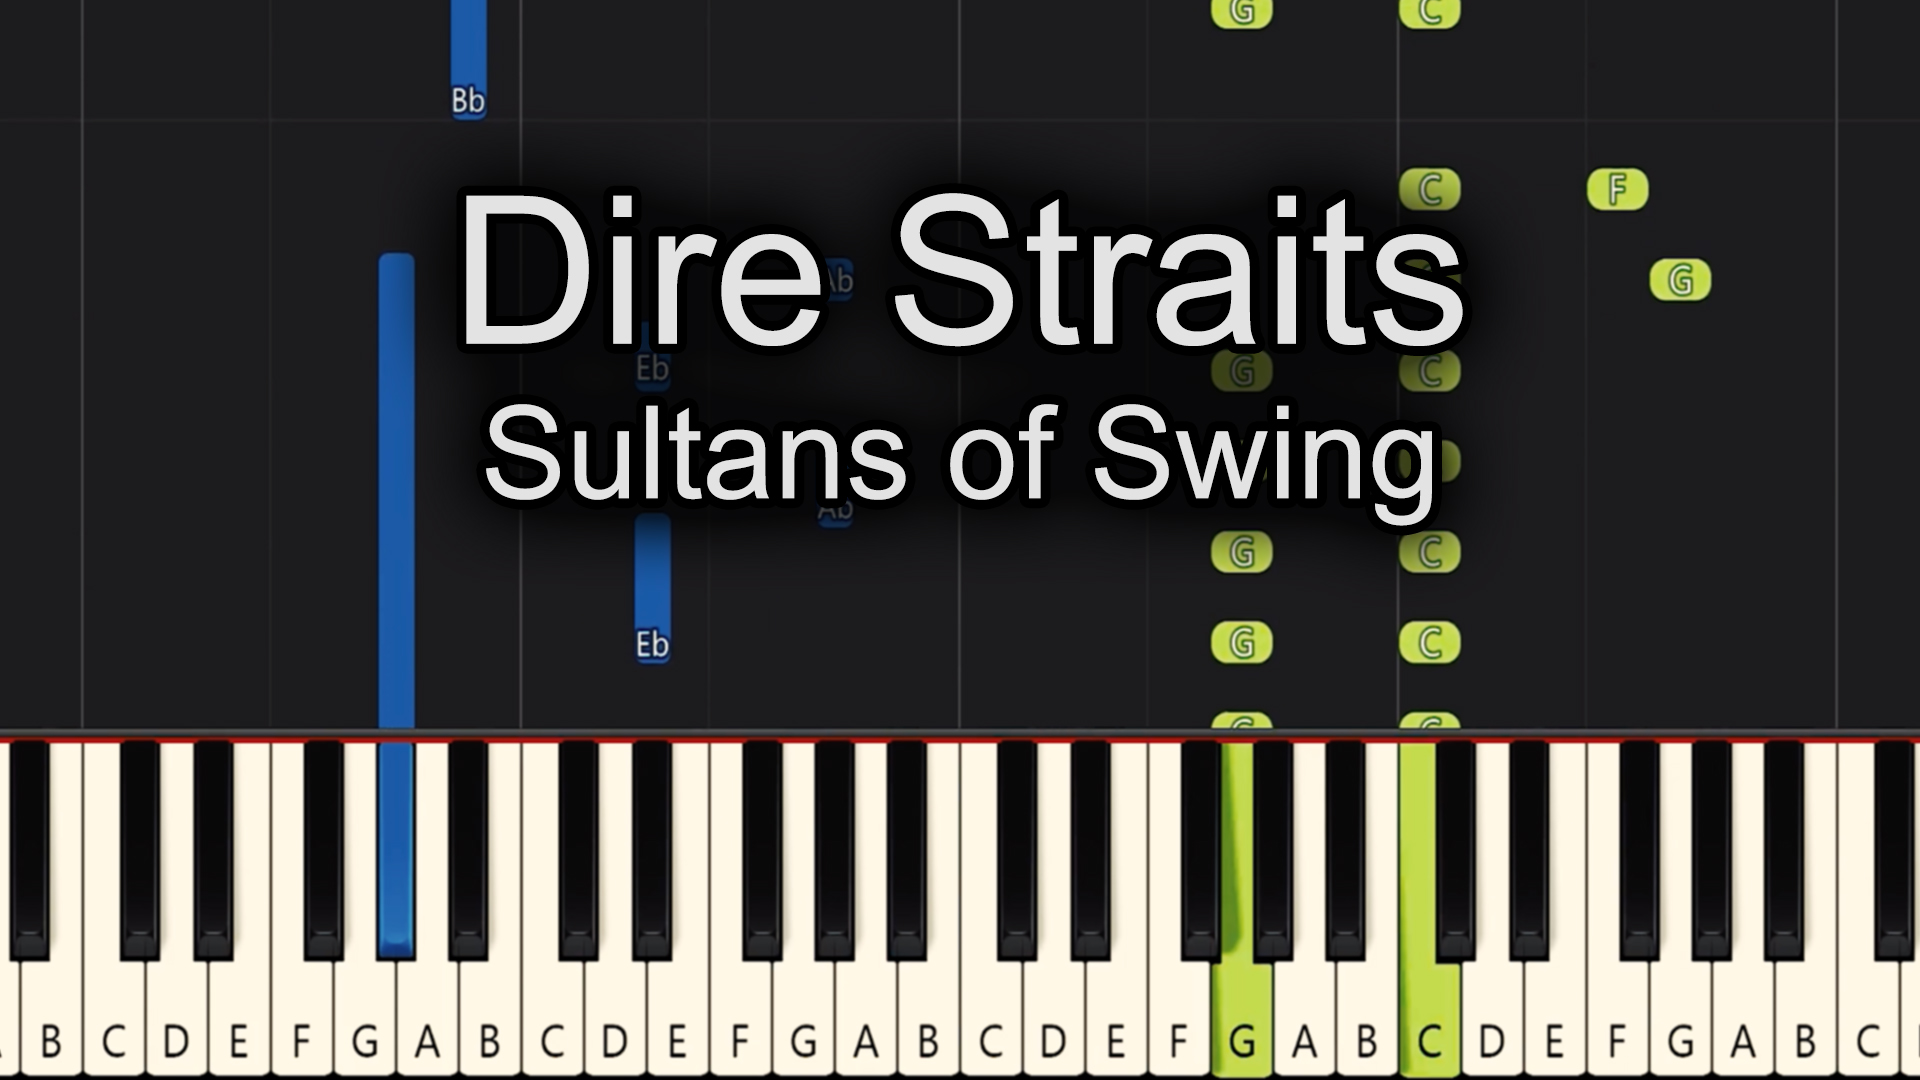 Dire Straits – Sultans of Swing – Chords